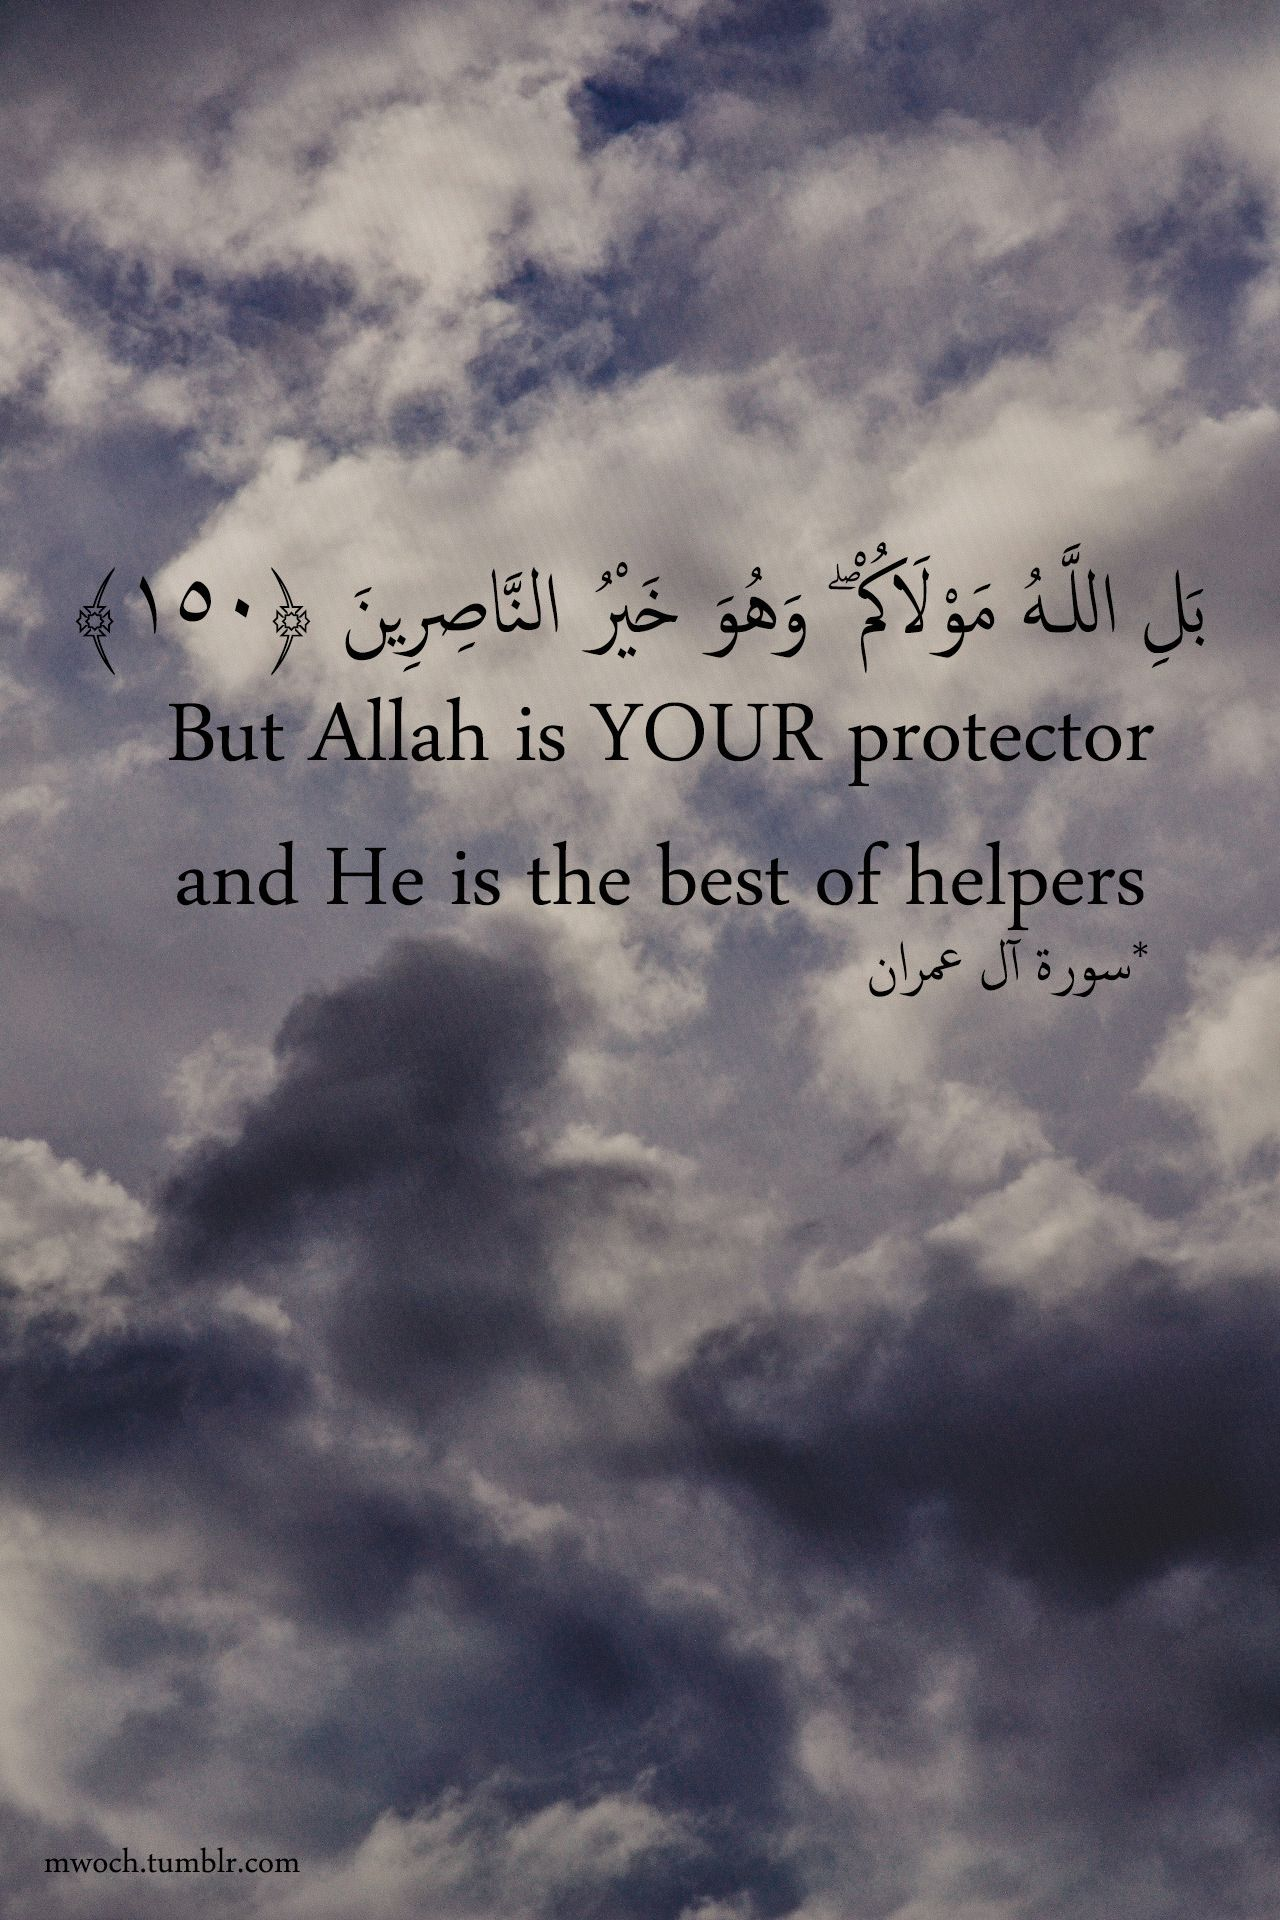 Indeed.He is the best of helpers.Grateful to Allah that led me out